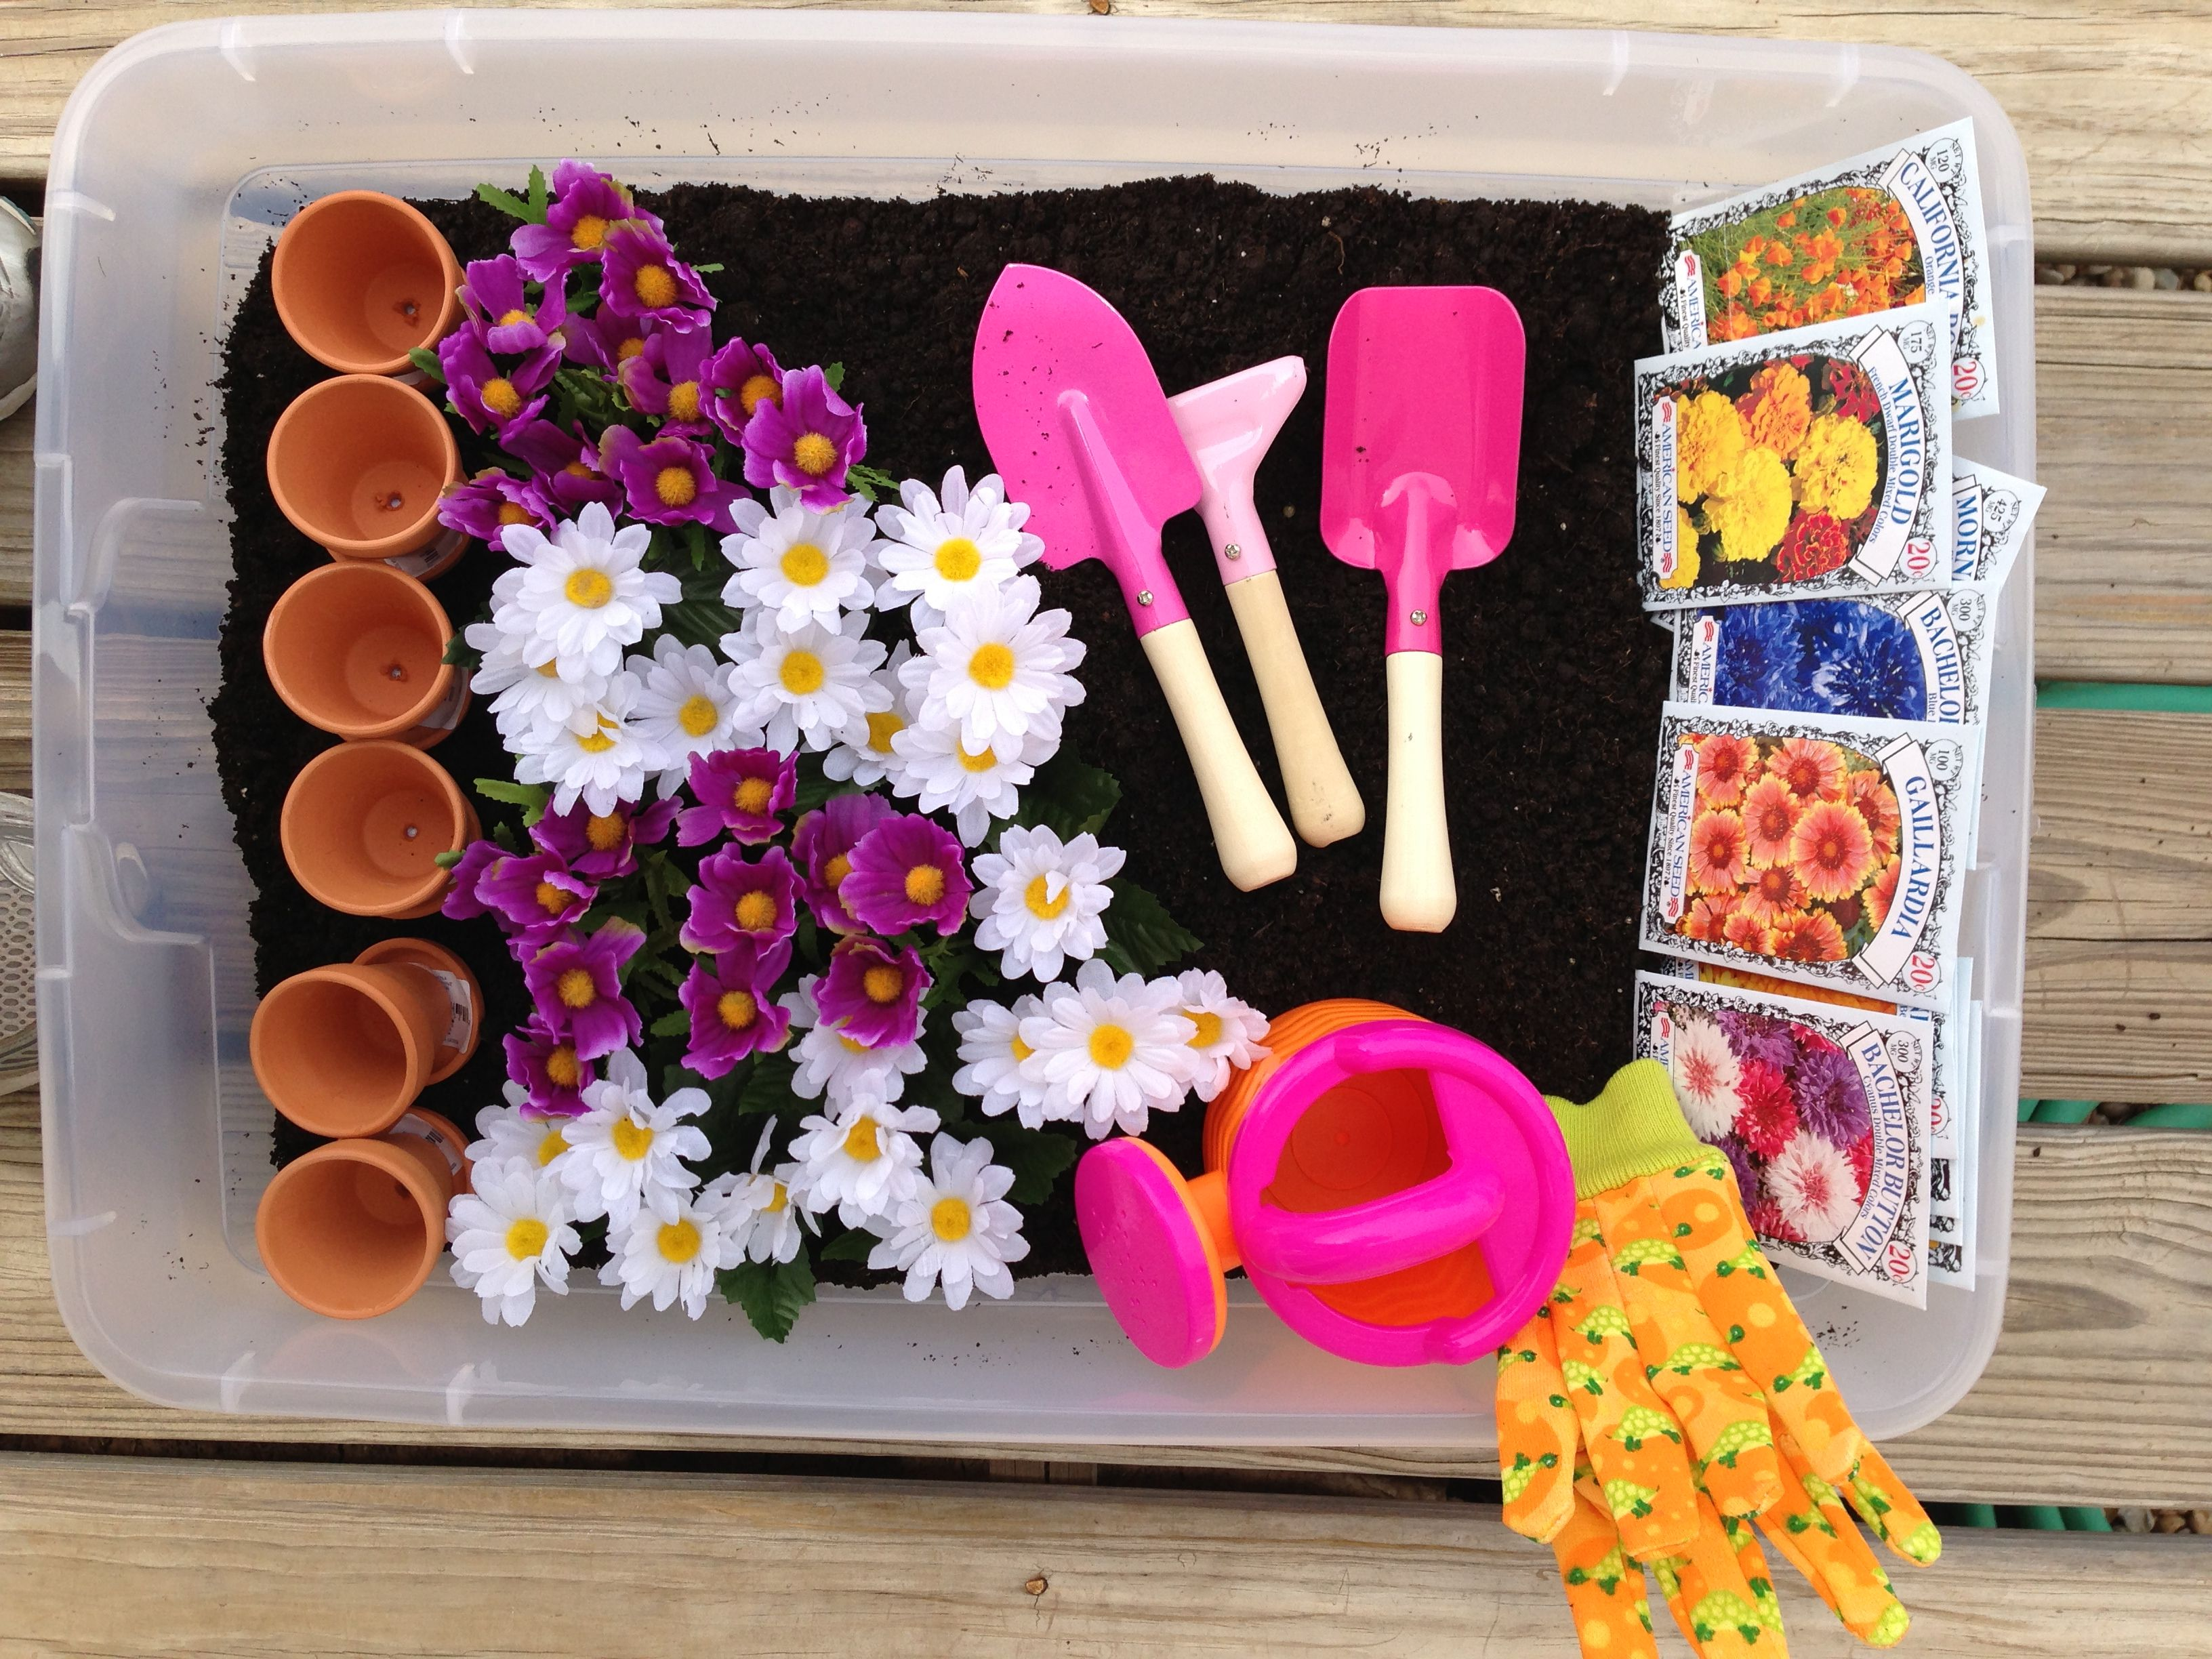 Made A Gardening Sensory Bin For Chloe Potting Soil Seed Packages Mini Pots Tools Gloves